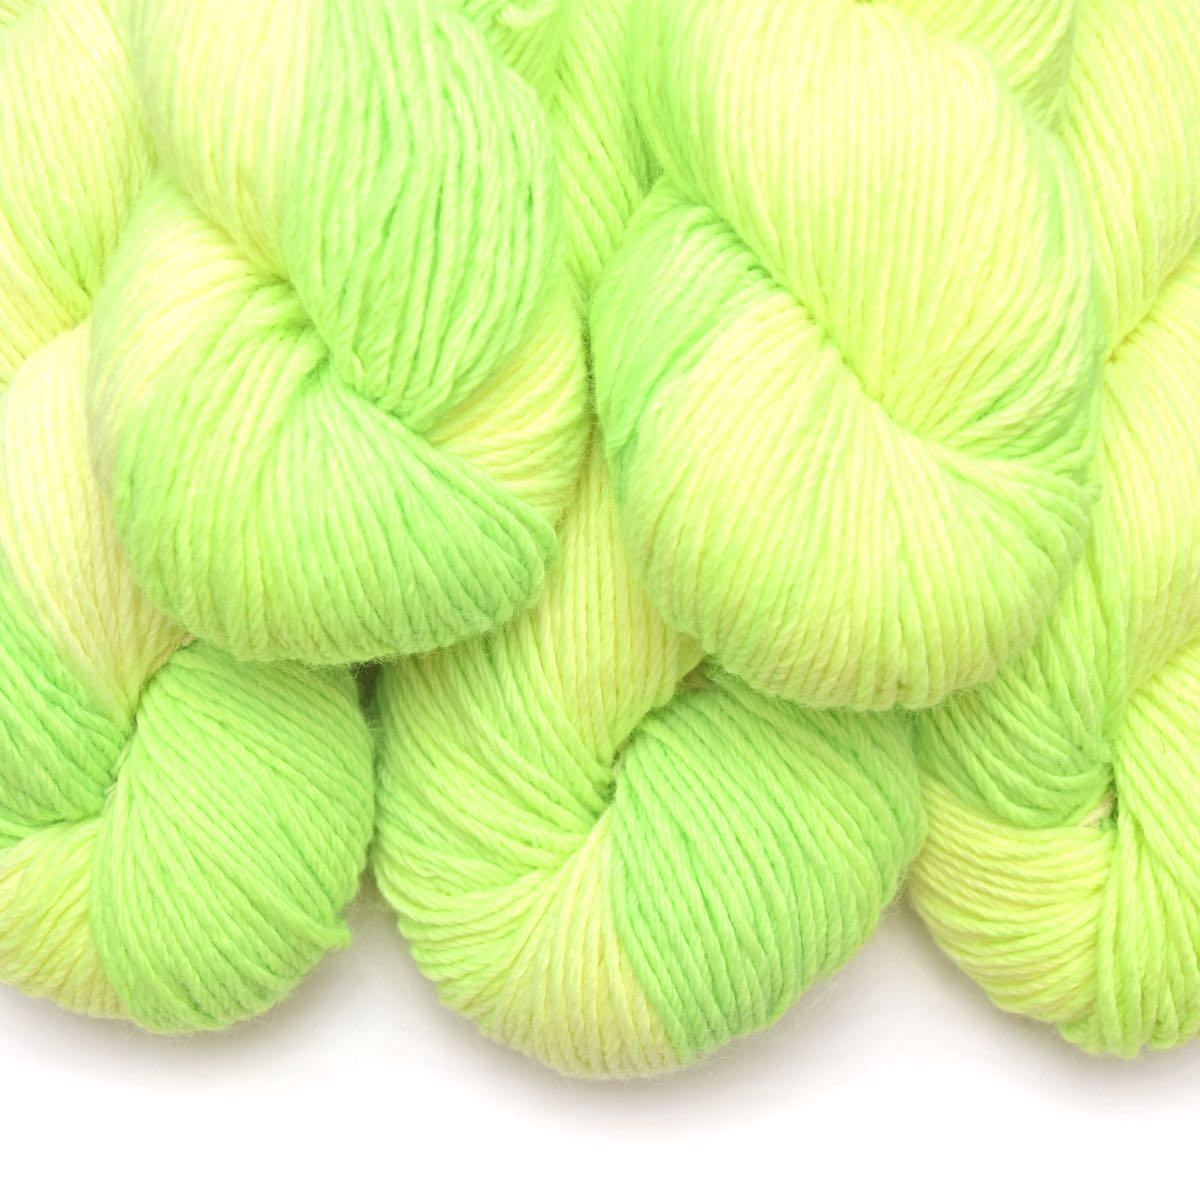 Z Twist yarn for crocheters